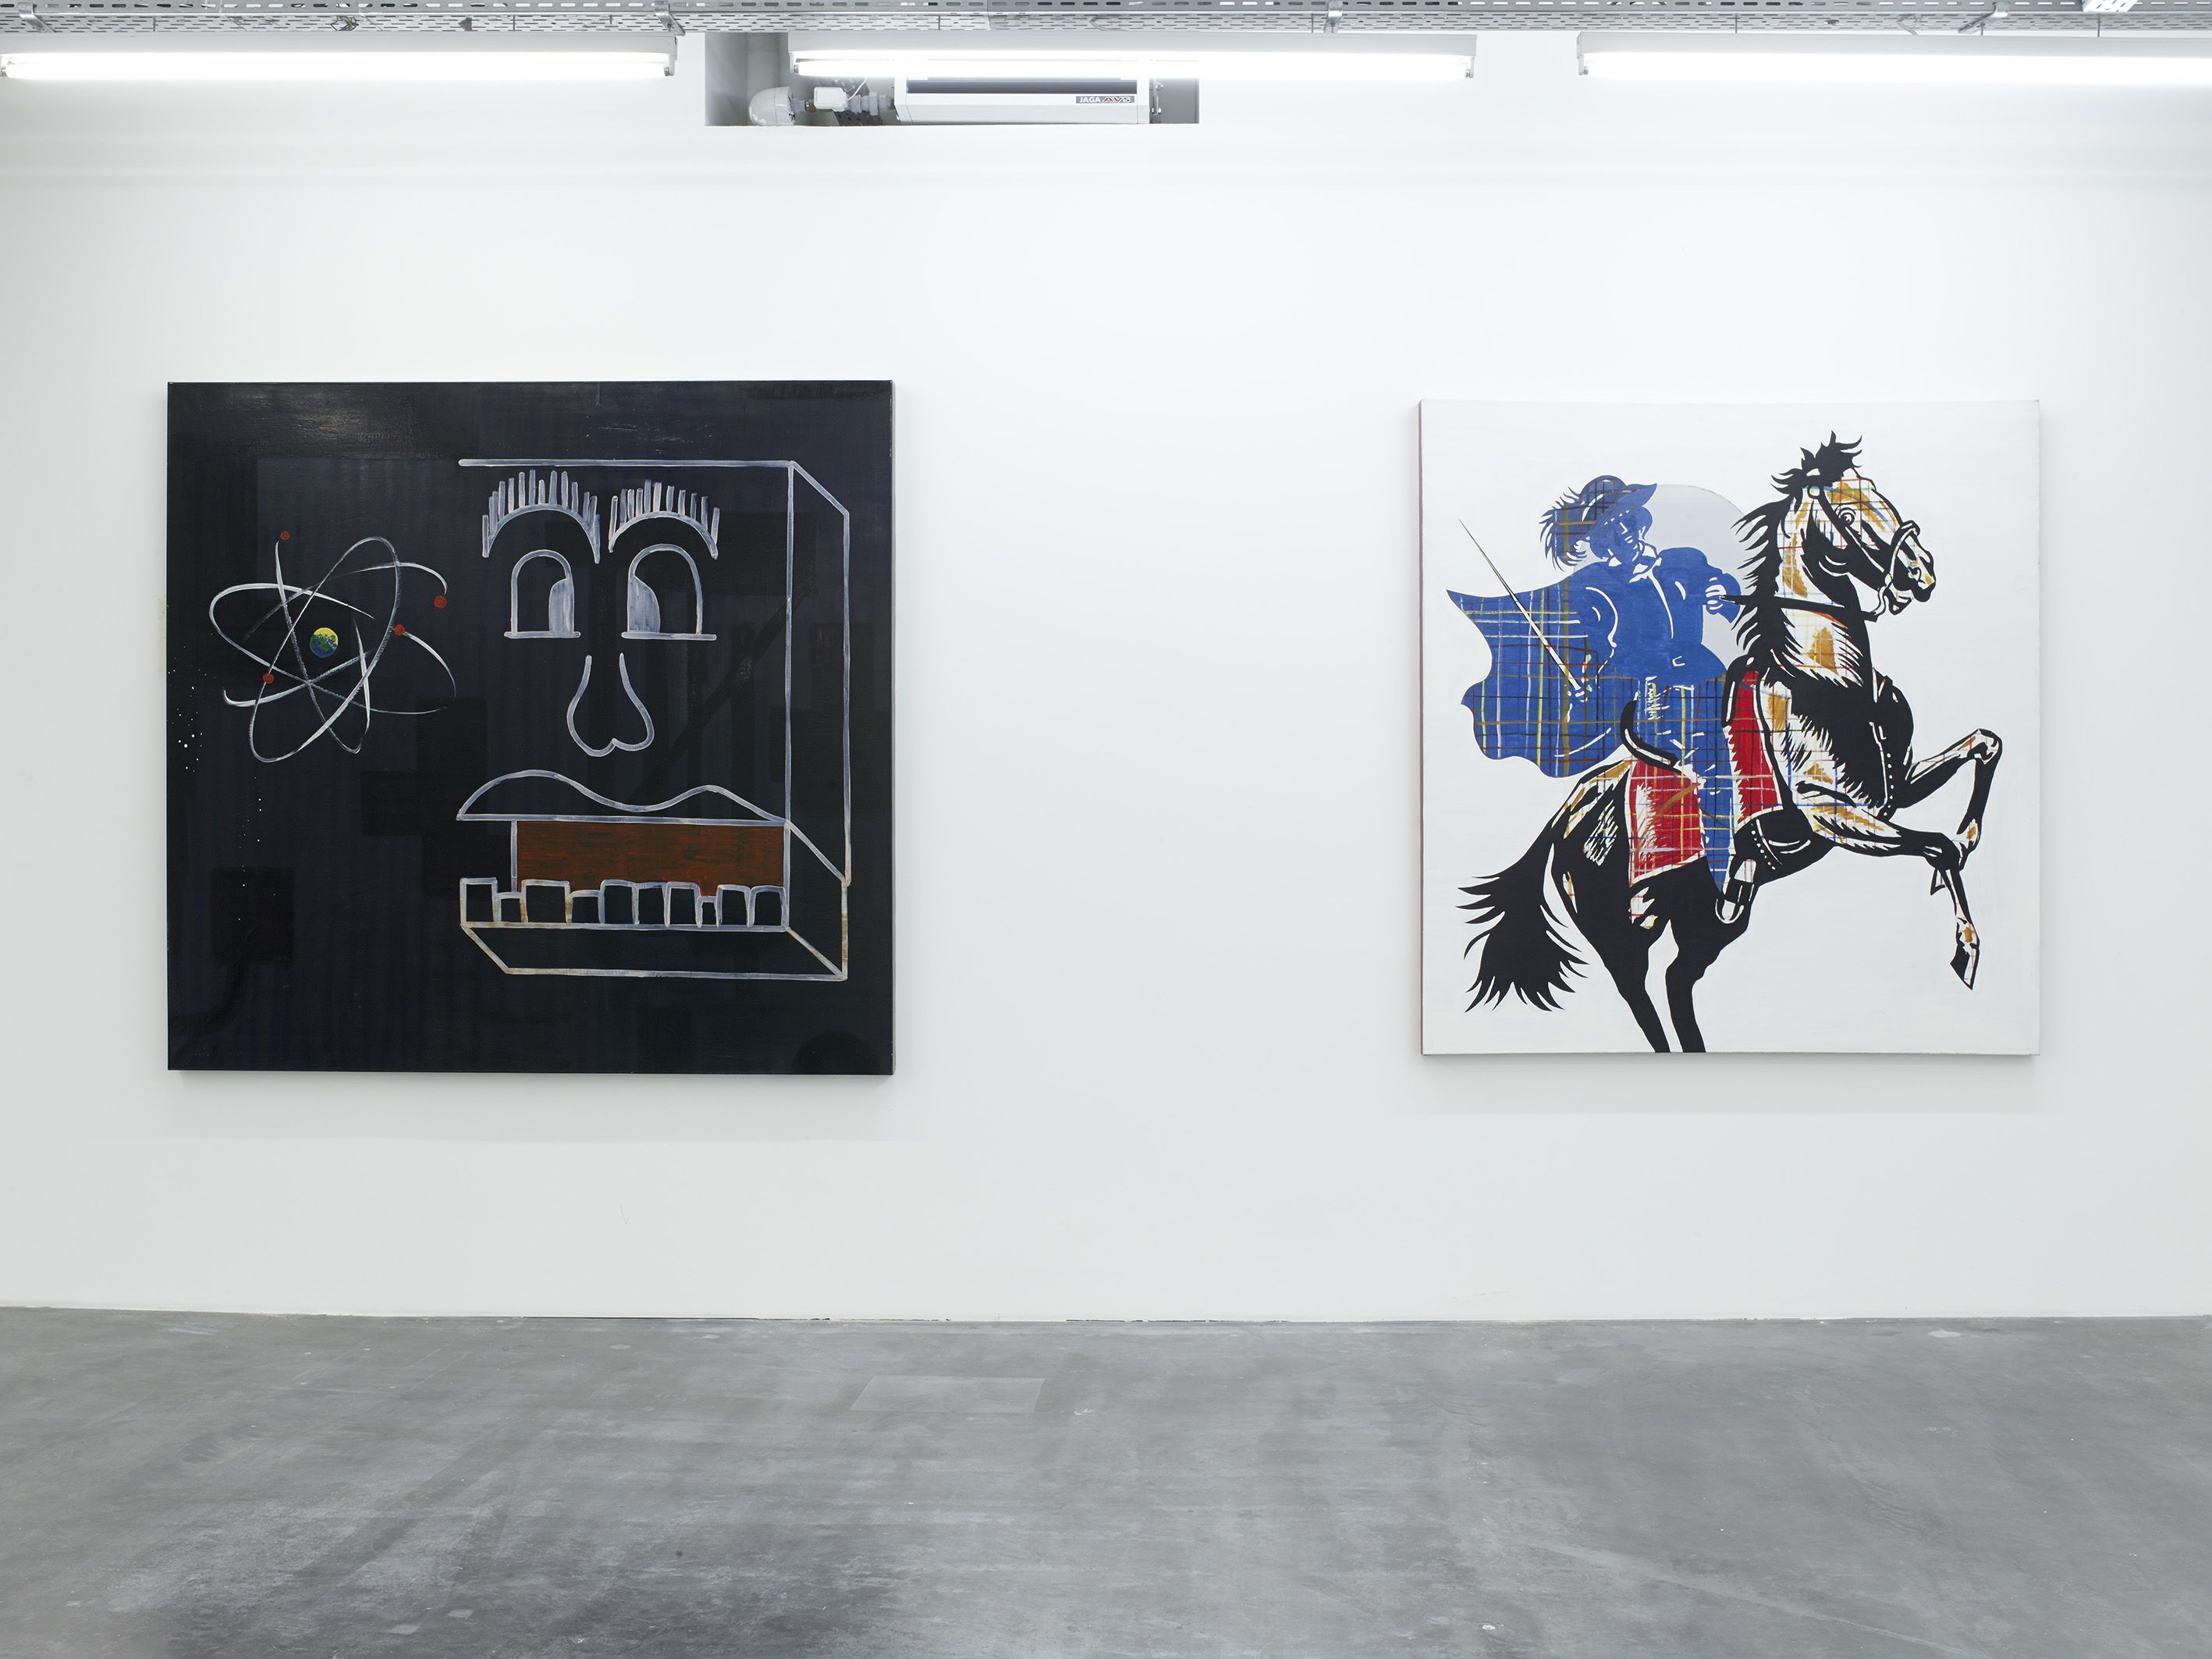 Walter Swennen, Aton, 1998 and Super blaue reiter, 1998